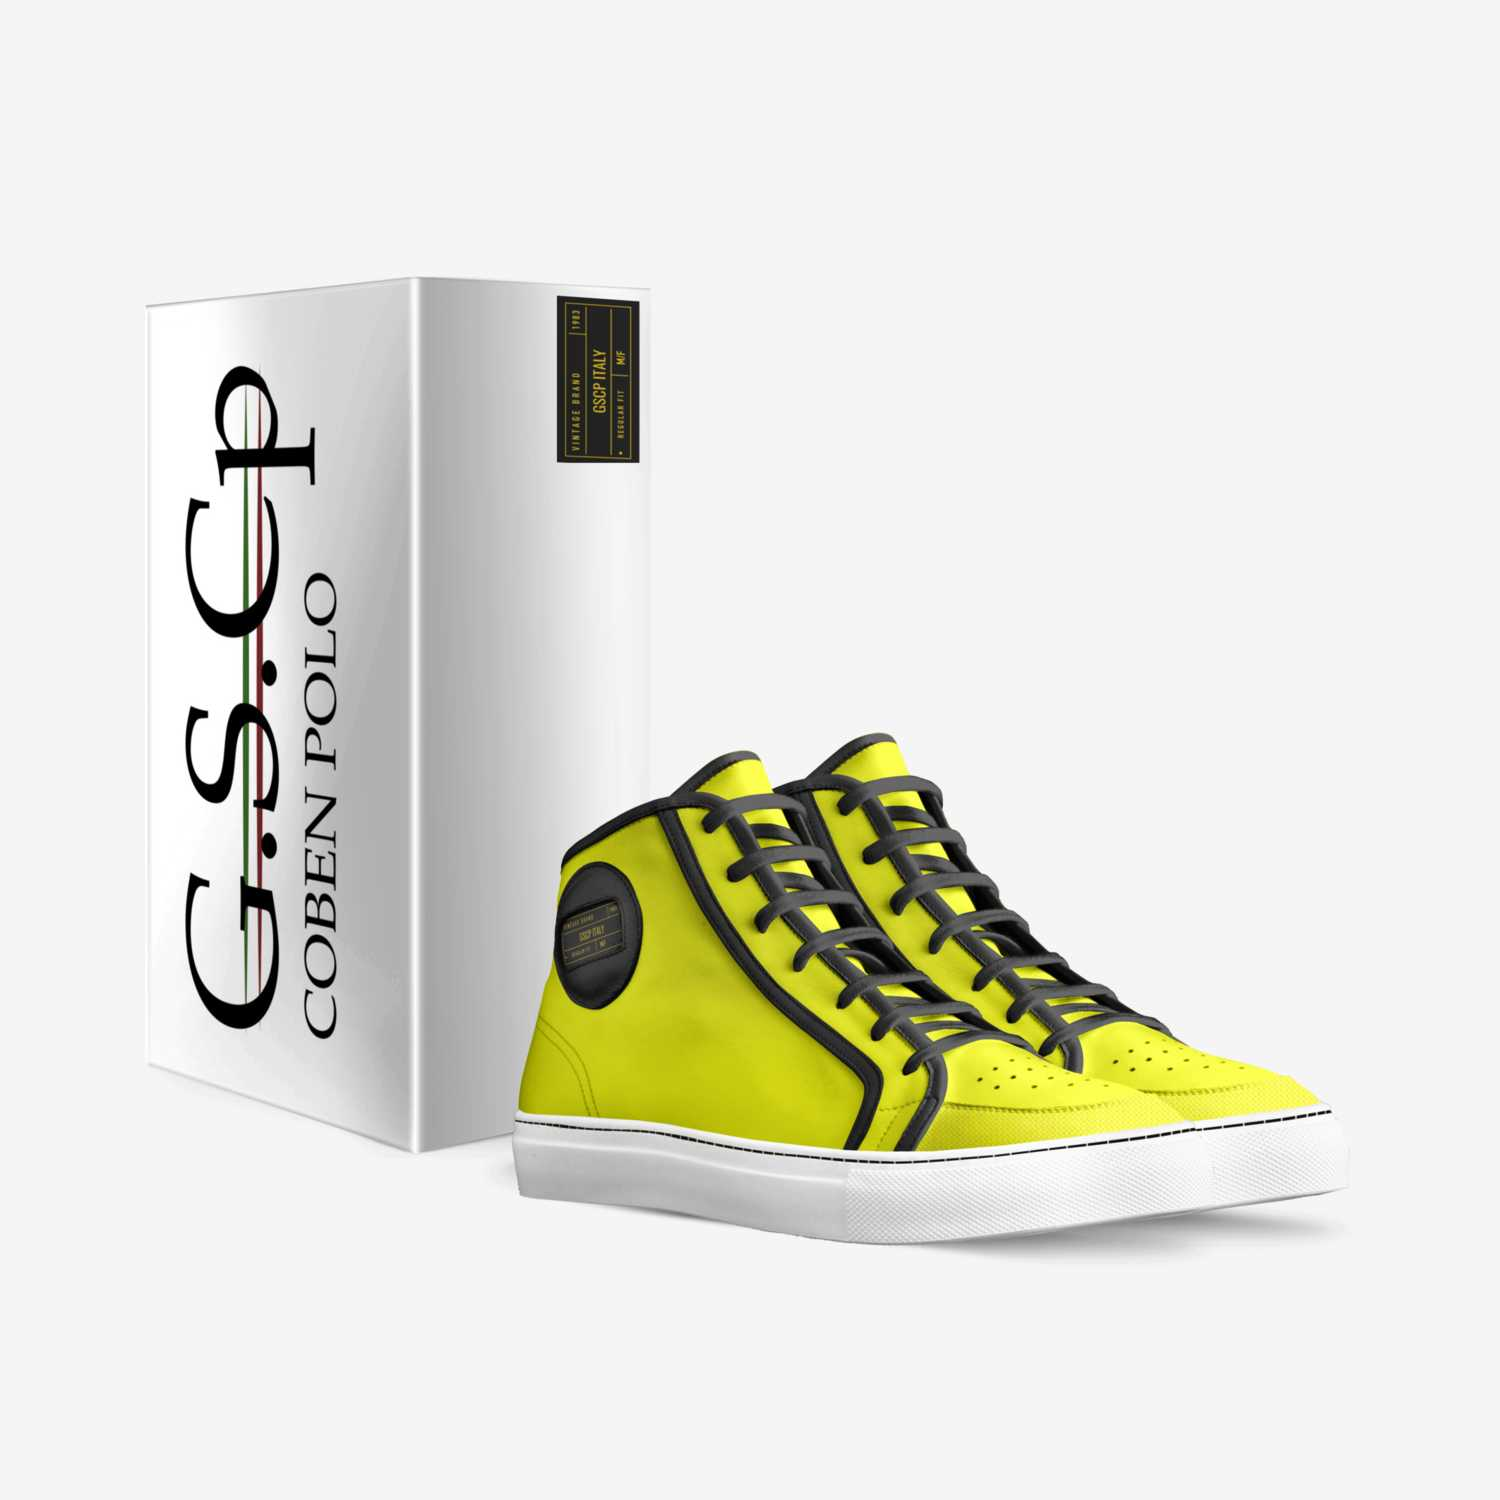 G.S.CP ITALY custom made in Italy shoes by Costa Bentezis | Box view